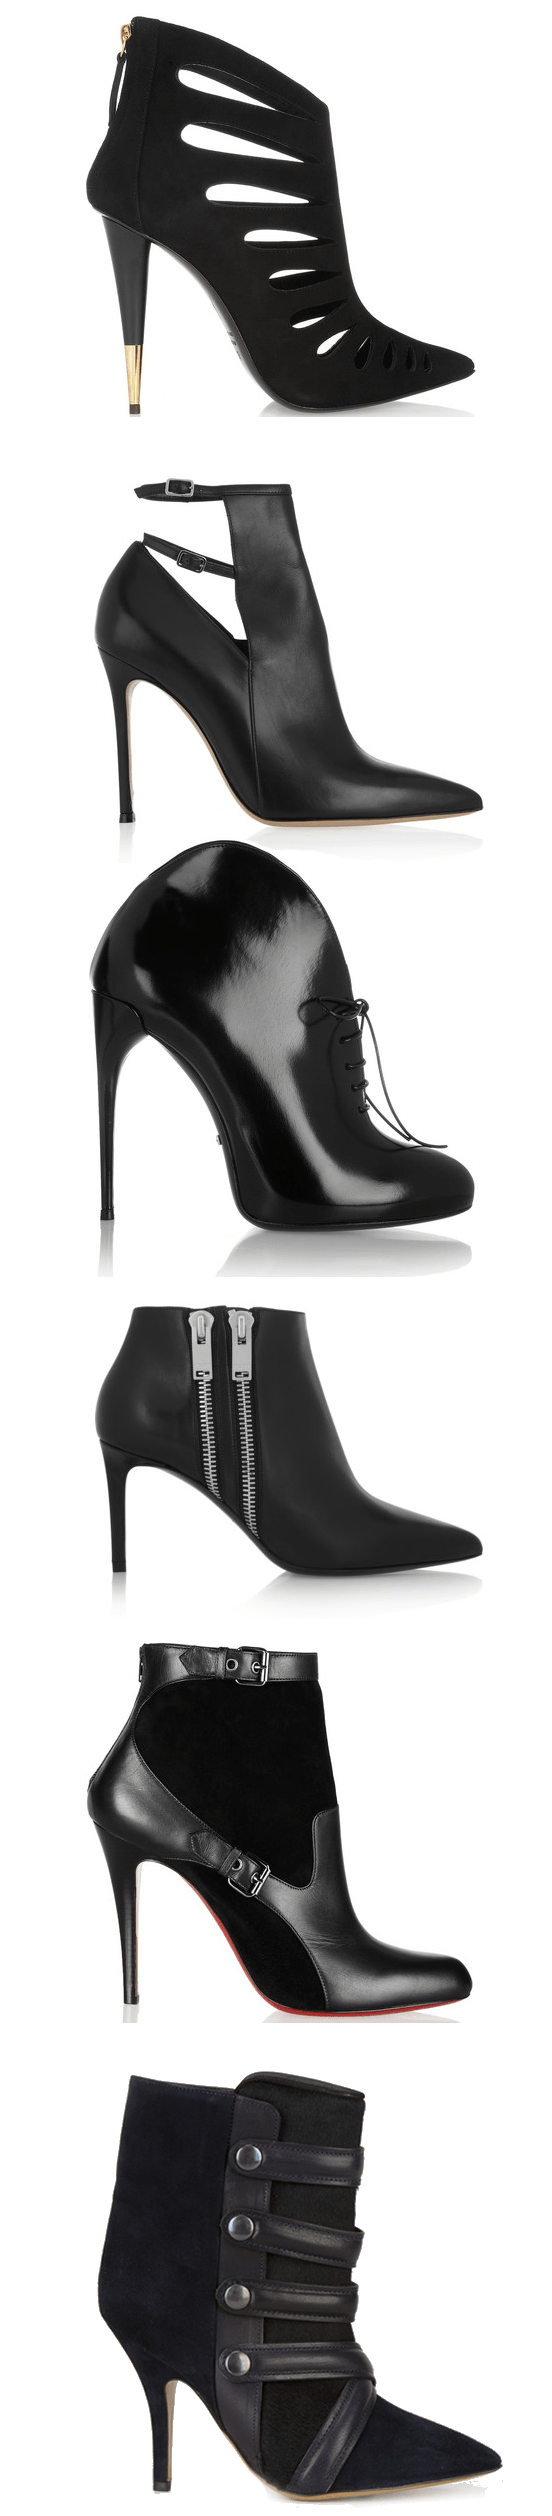 Fall-2013-sexy-ankle-boots-booties-trend